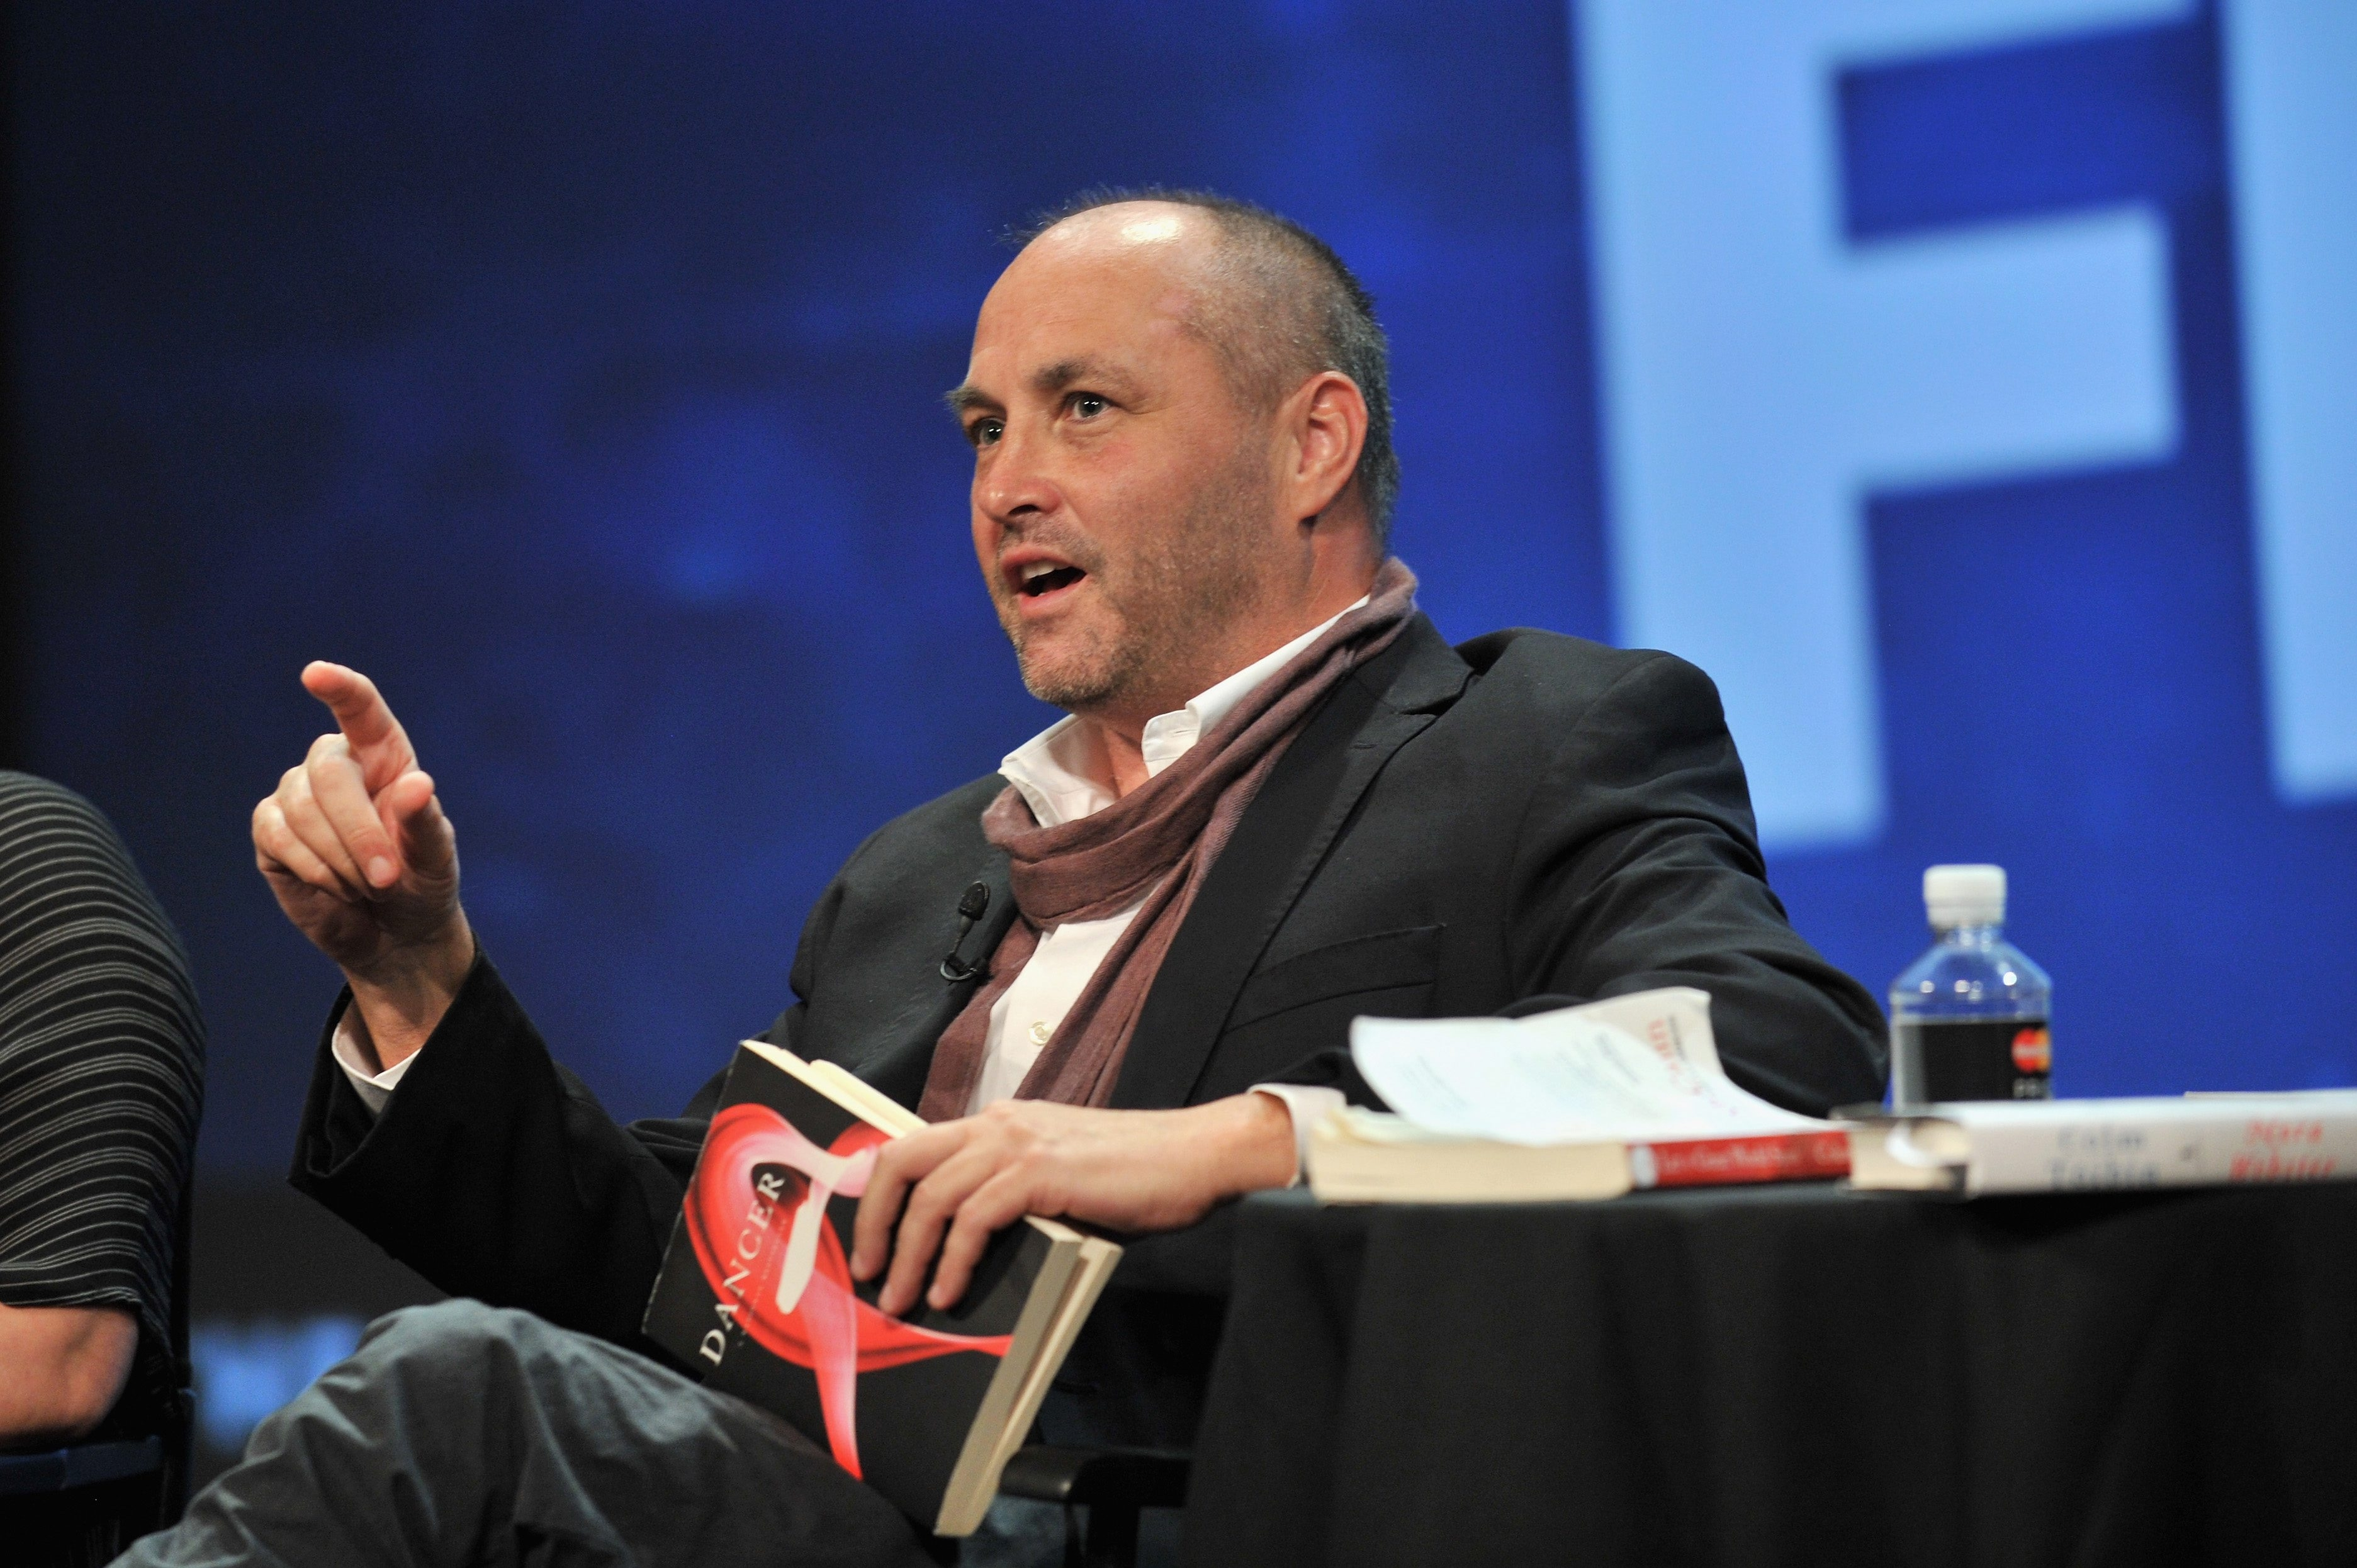 Author Colum McCann talked to students about the creative process.